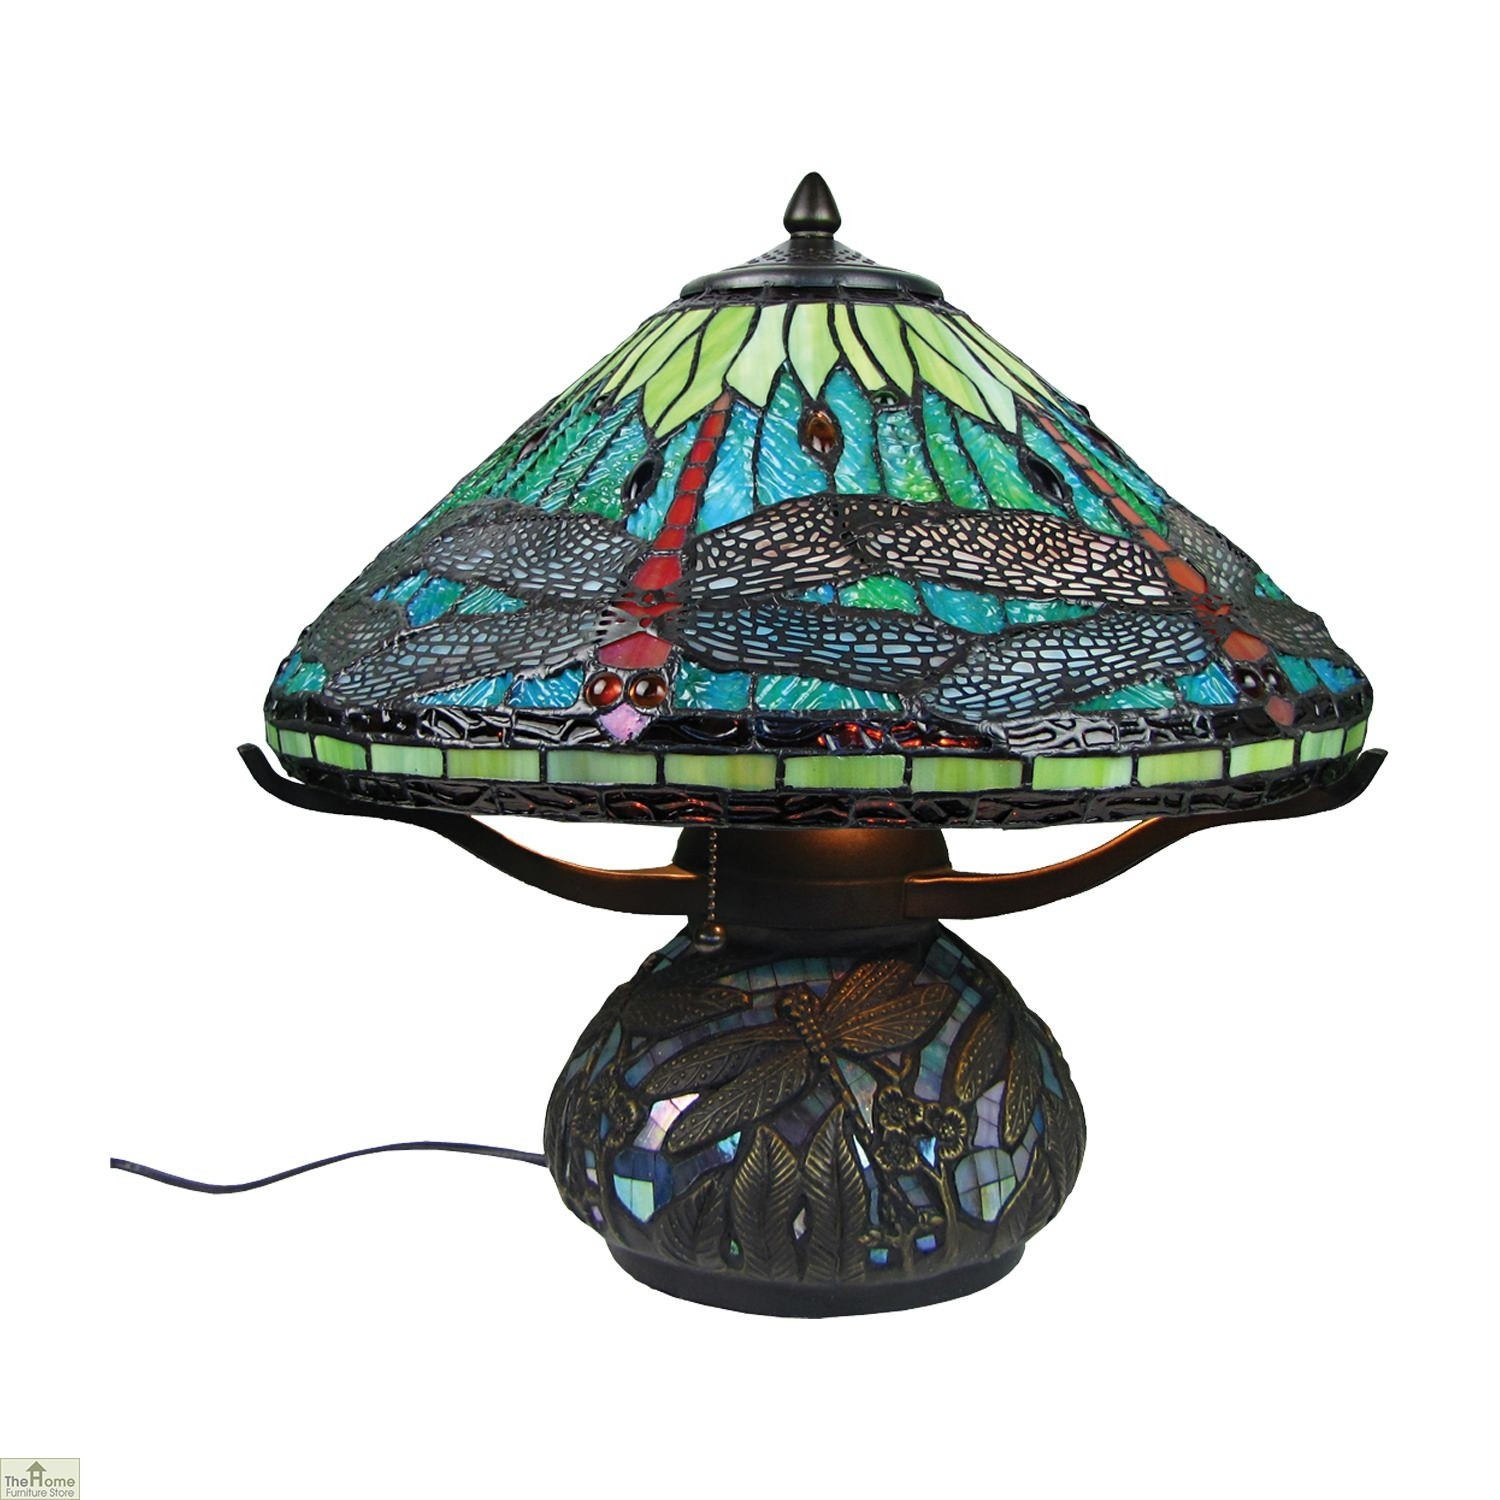 Aqua Blue Dragonfly Table Lamp The Home Furniture Store